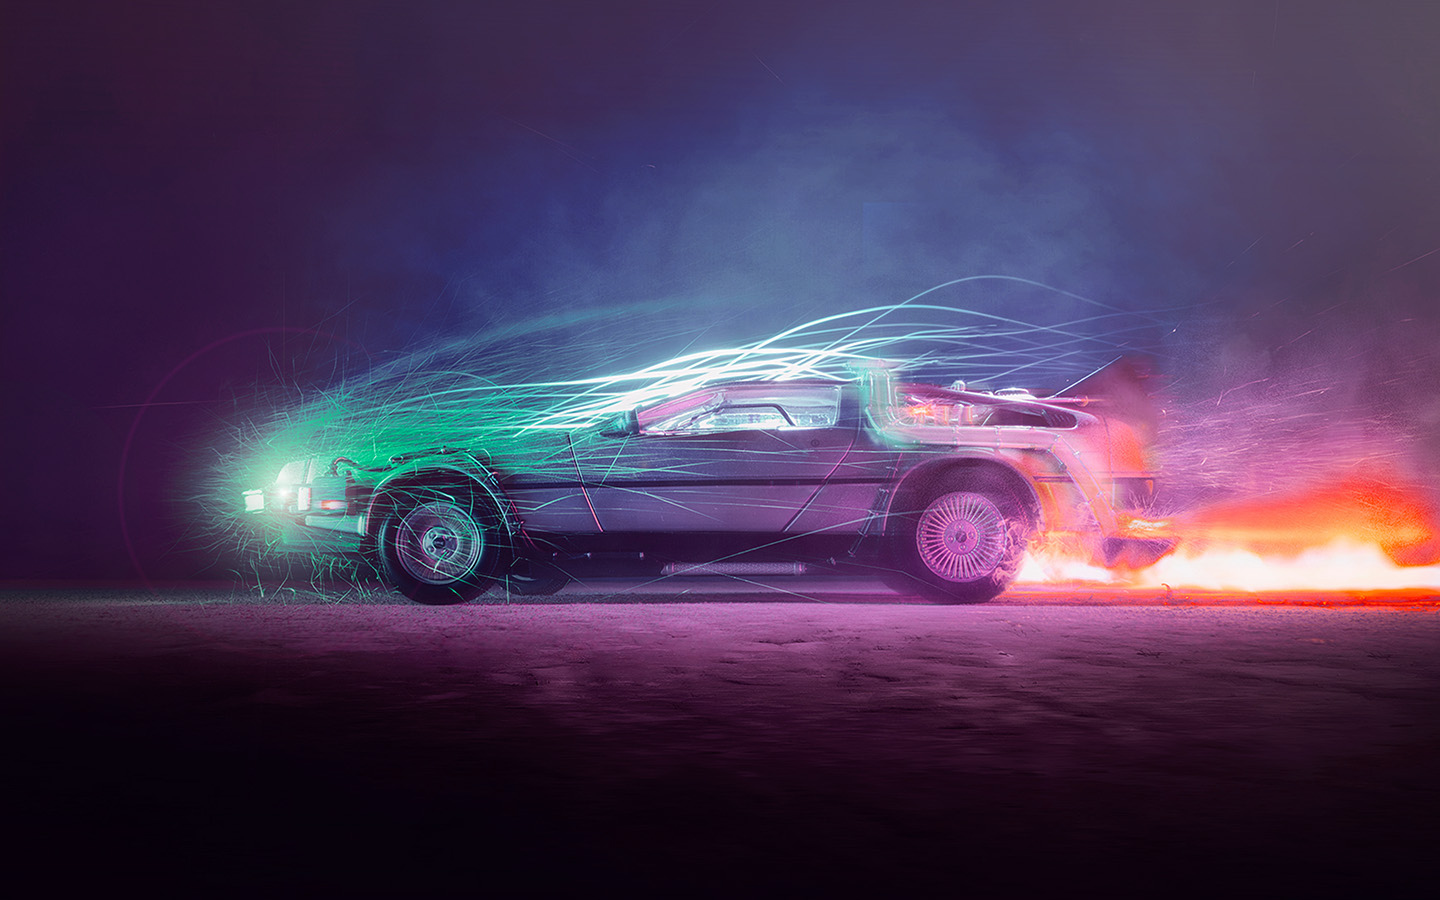 Bh85 Backtothefuture Car Film Art Night Cool Wallpaper